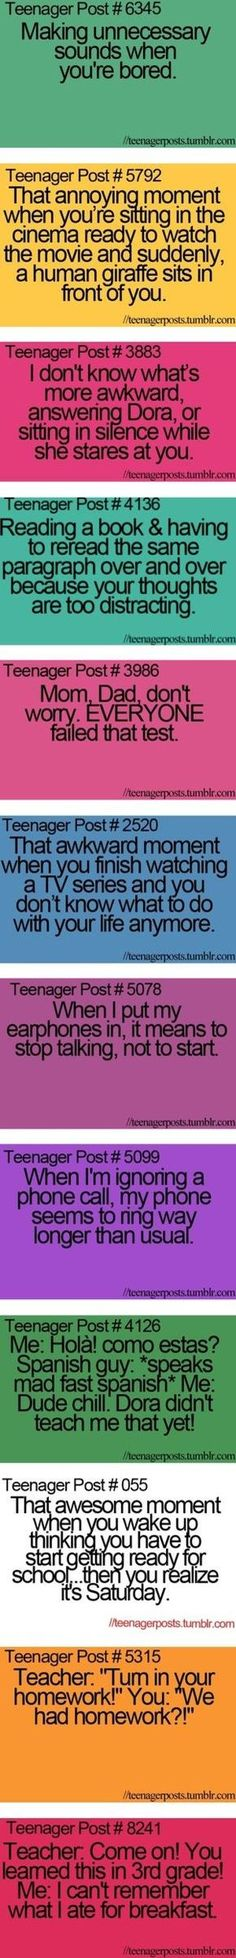 these are supposed to be teenager posts but im pretty sure most of them still apply to my adult life